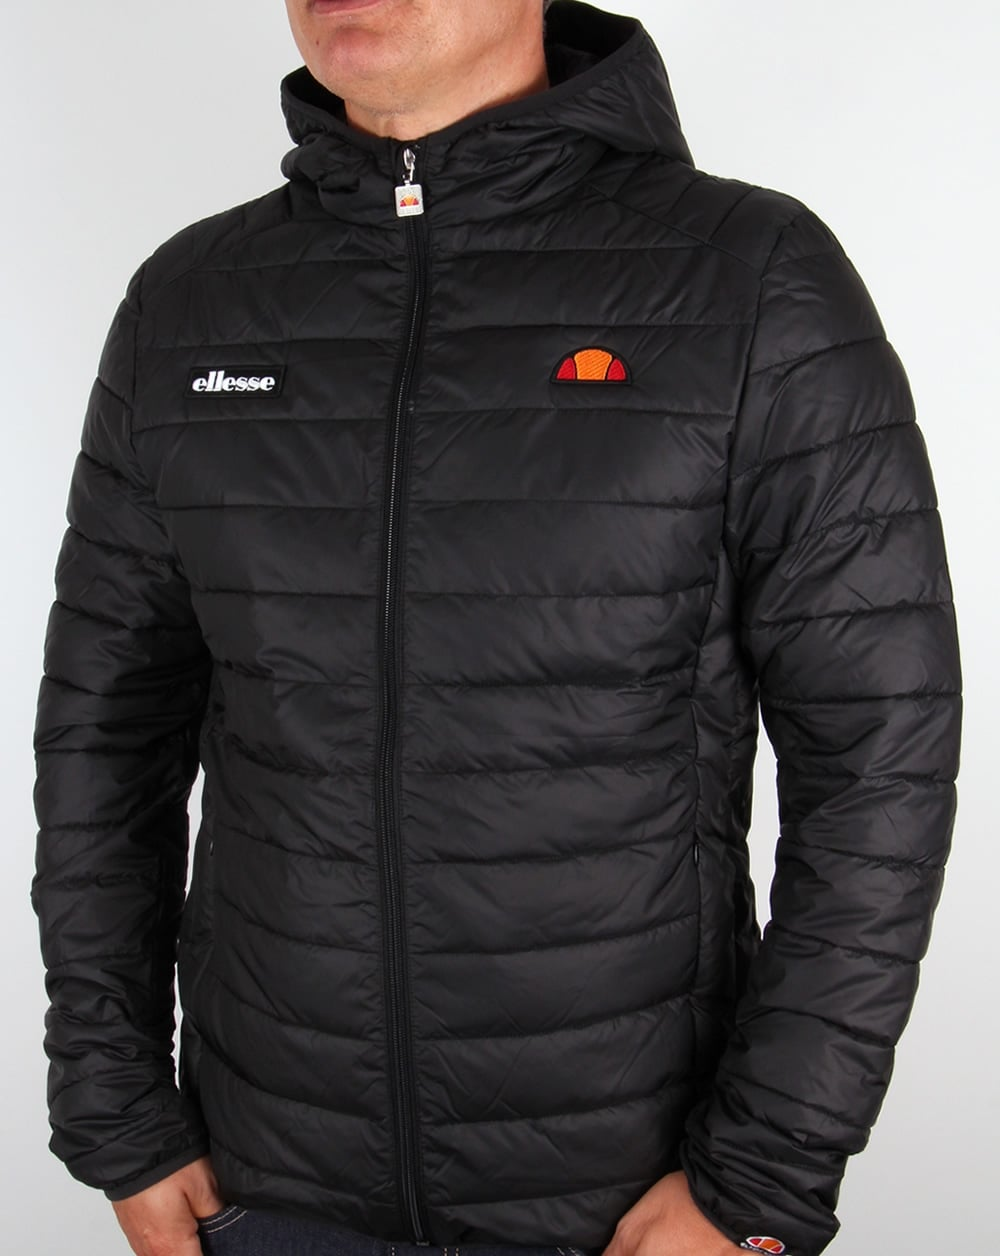 Ellesse Lombardy Puffer Jacket Black Padded 80s Casual